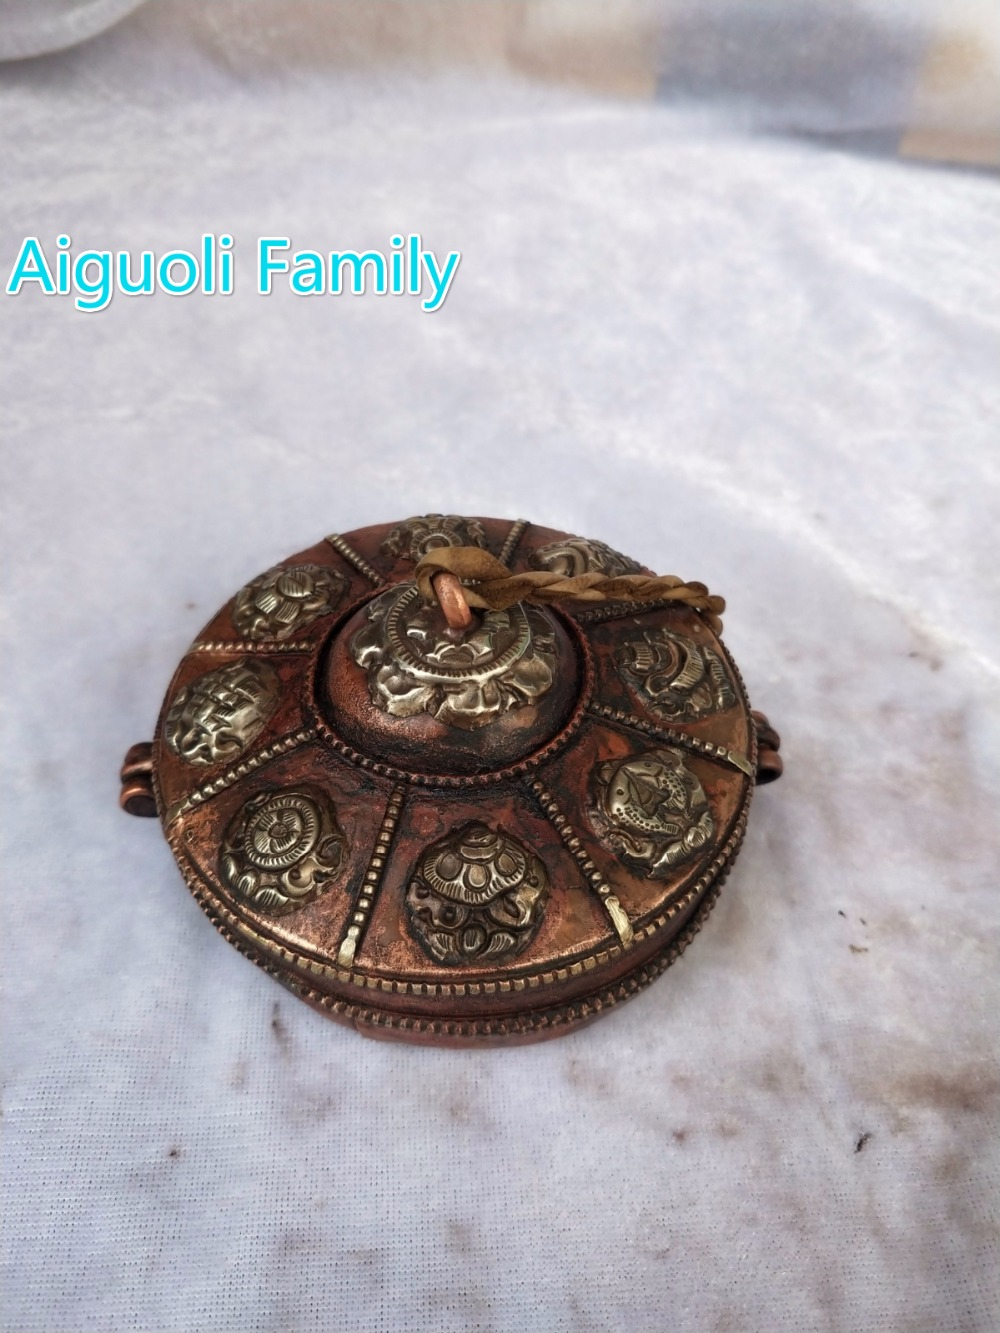 Diameter 9CM!!!Nepal/Asian antique Tibet Old Handwork 1 Pair Copper Bell With Box Statue From Traditional Tibetan Handicrafts 01Diameter 9CM!!!Nepal/Asian antique Tibet Old Handwork 1 Pair Copper Bell With Box Statue From Traditional Tibetan Handicrafts 01